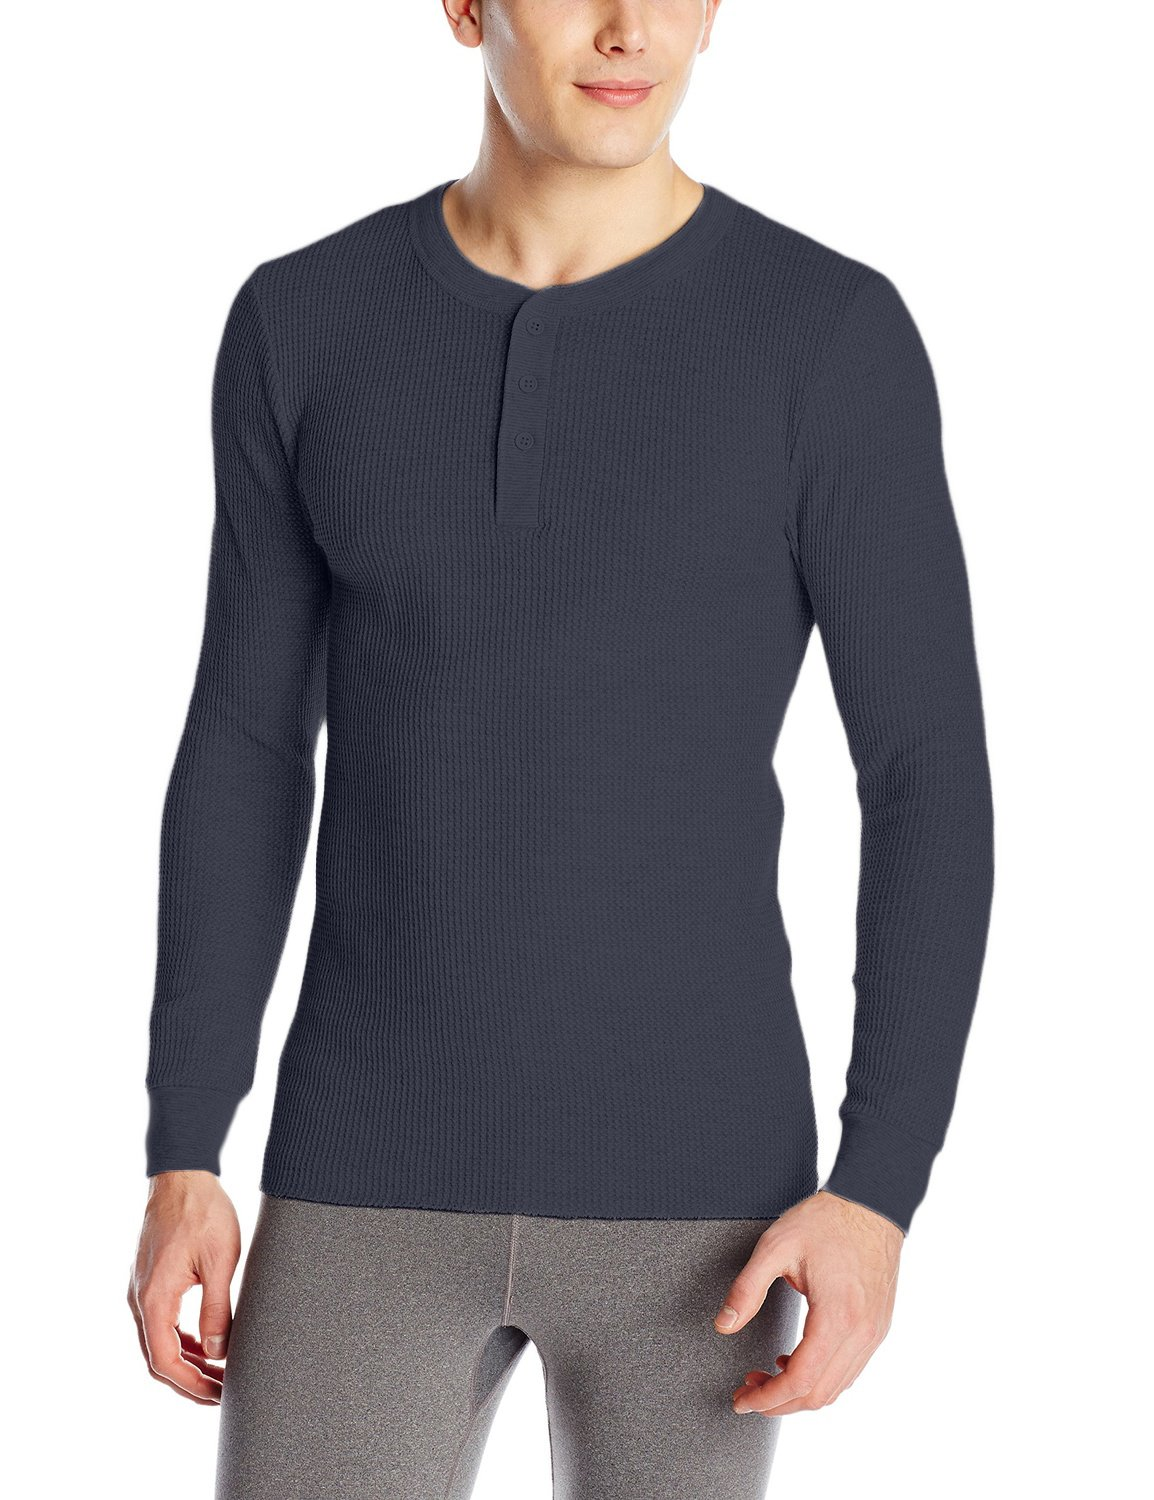 Fruit of the Loom Men's Classics Midweight Thermal Henley (Large, Navy) by Fruit of the Loom